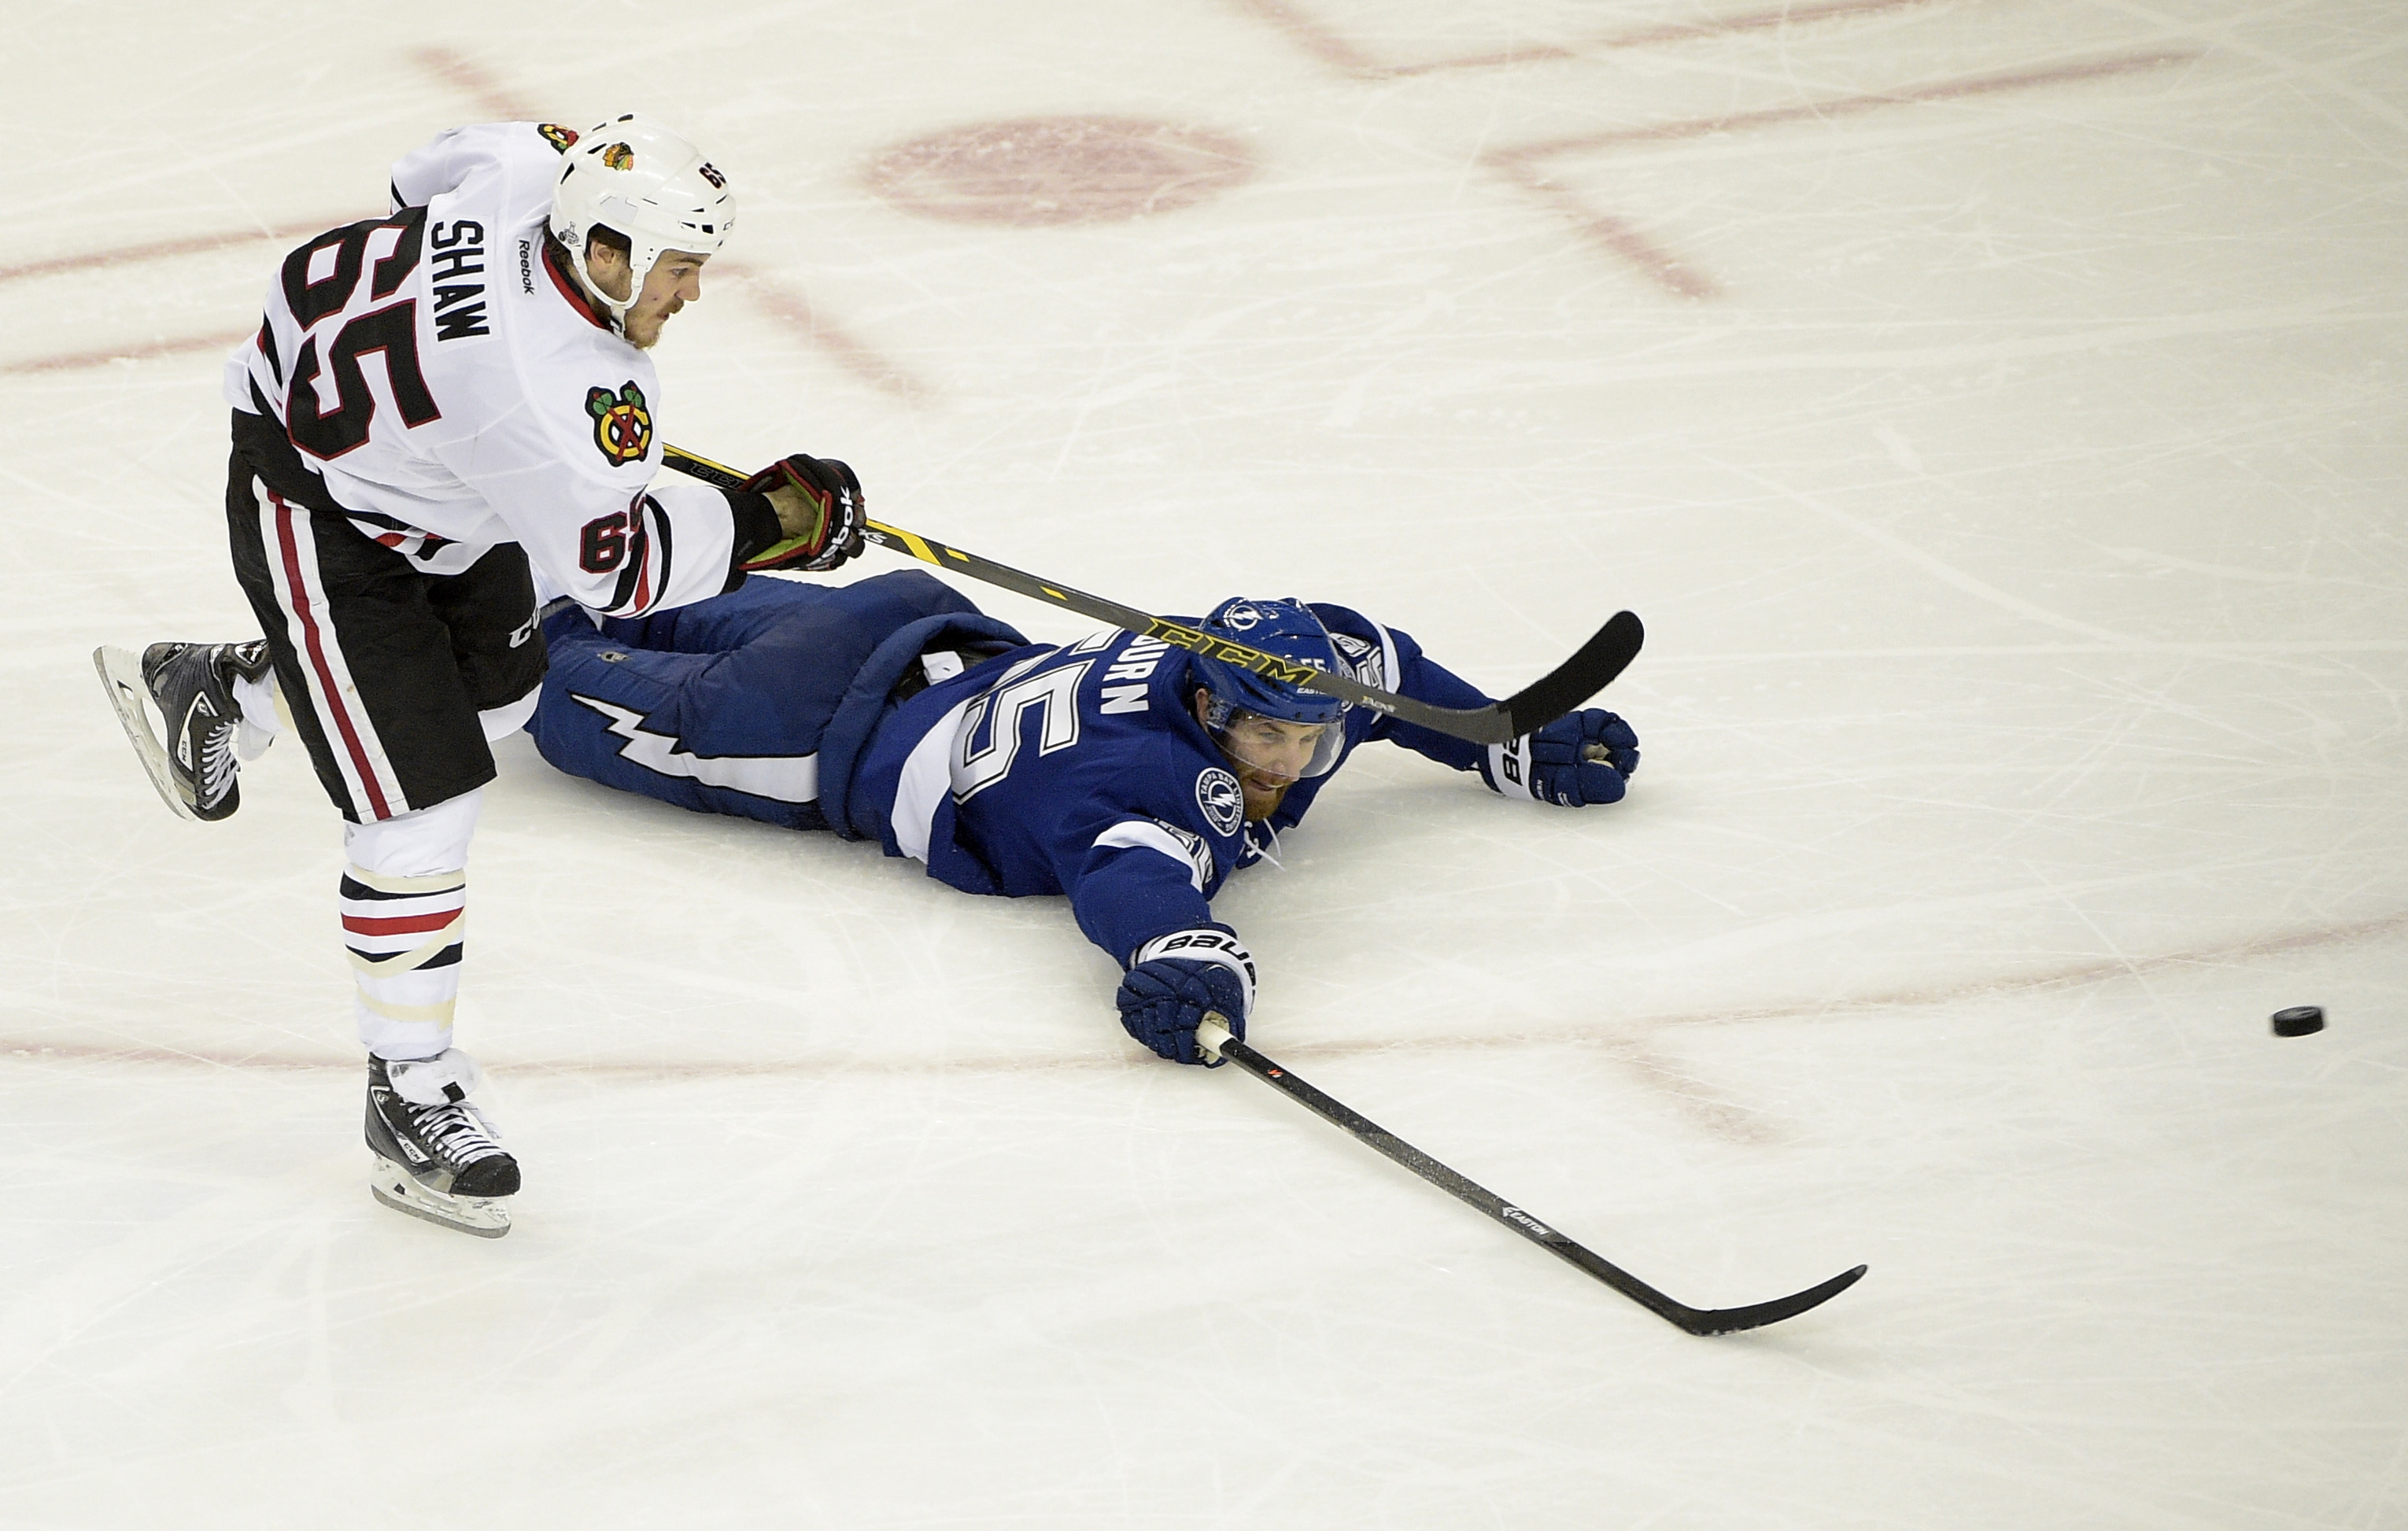 Chicago Blackhawks center Andrew Shaw (65) of Canada, left, shoots past Tampa Bay Lightning defenseman Braydon Coburn (55) of Canada,  during the third period in Game 1 of the NHL hockey Stanley Cup Final in Tampa, Fla., Wednesday, June 3, 2015. The Black